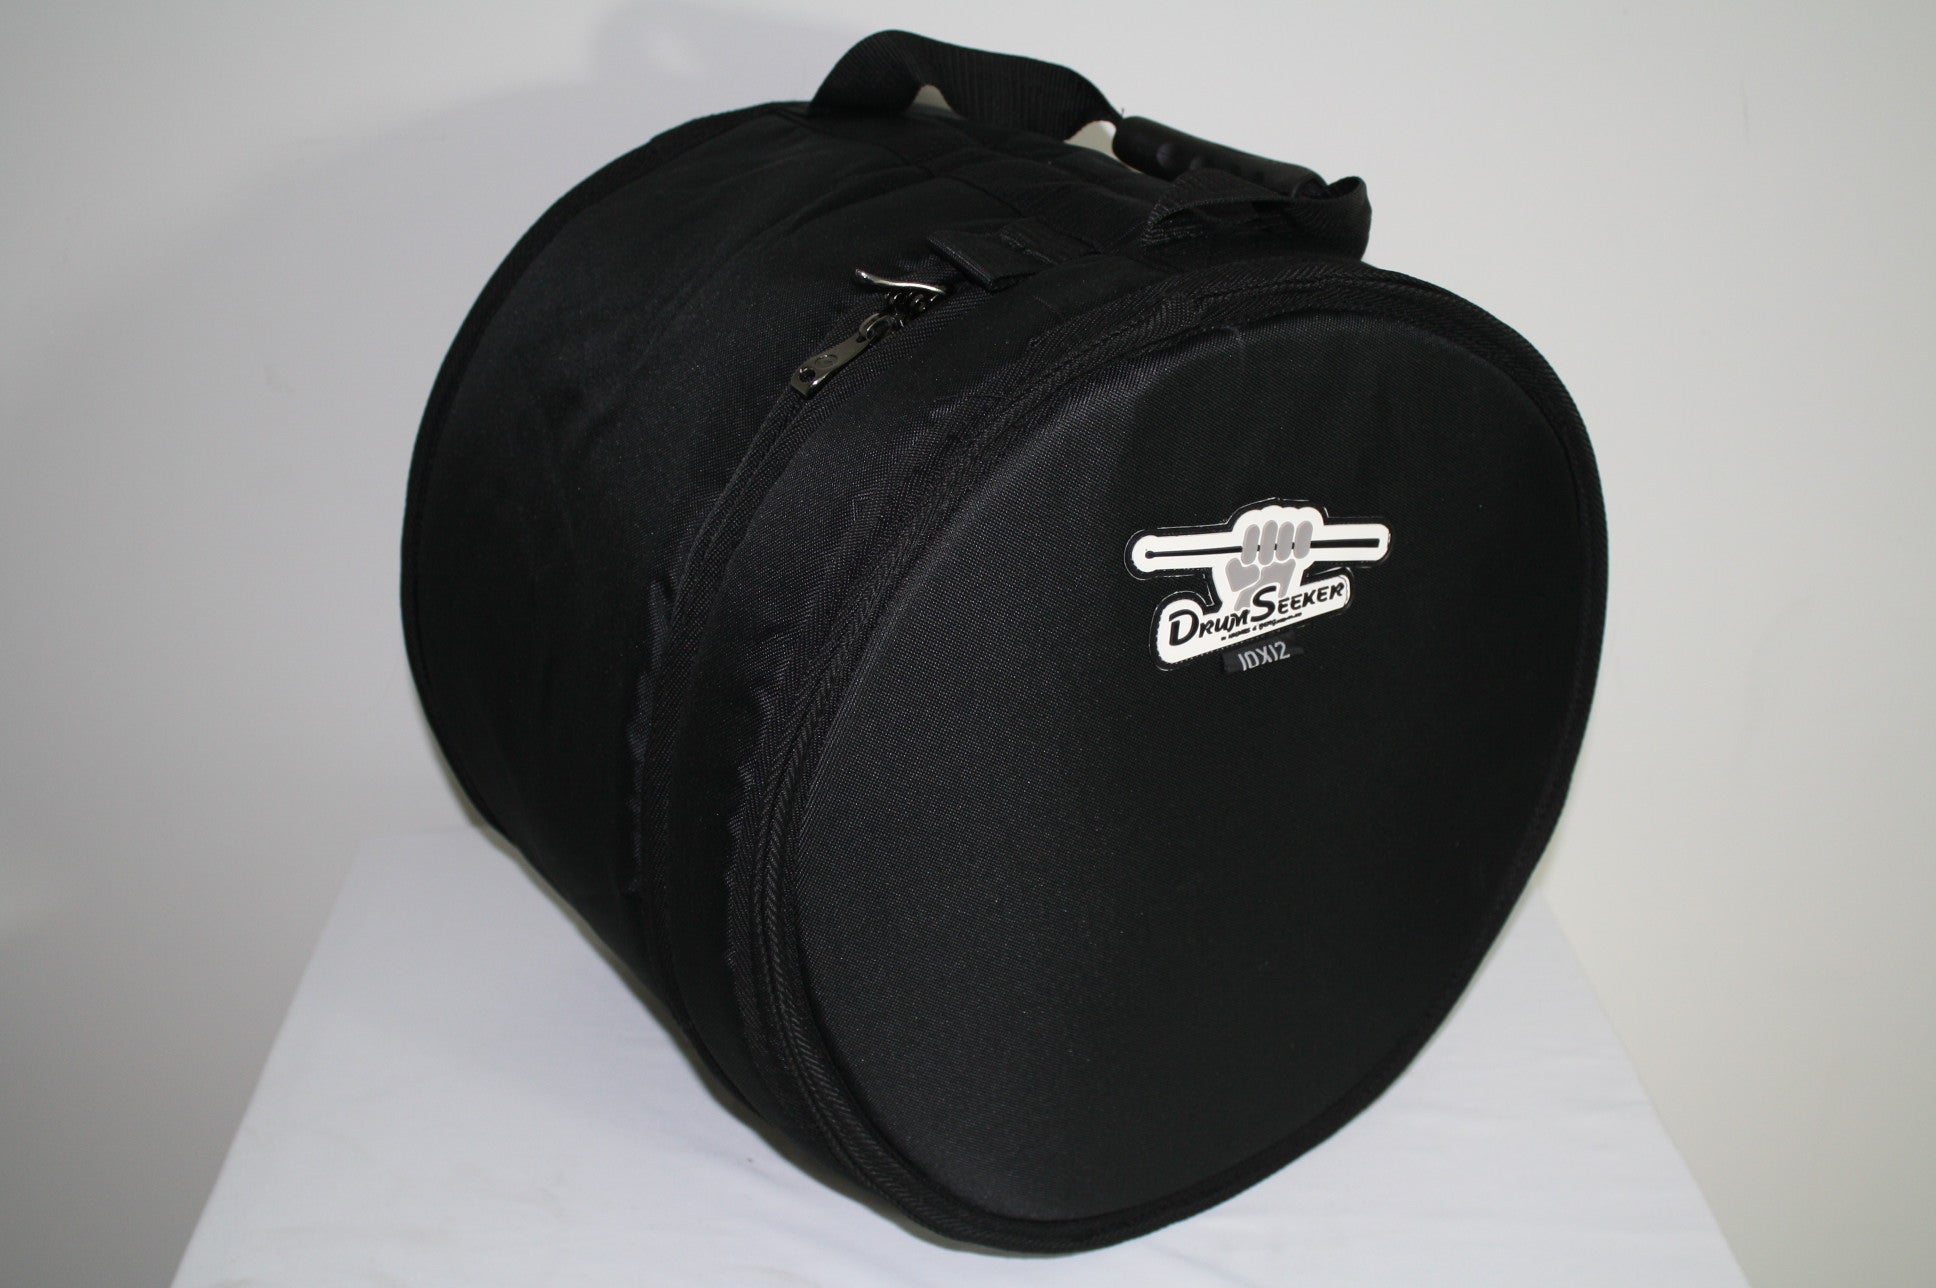 H&B  Drum Seeker 11 x 12 Inches Tom Drum Bag